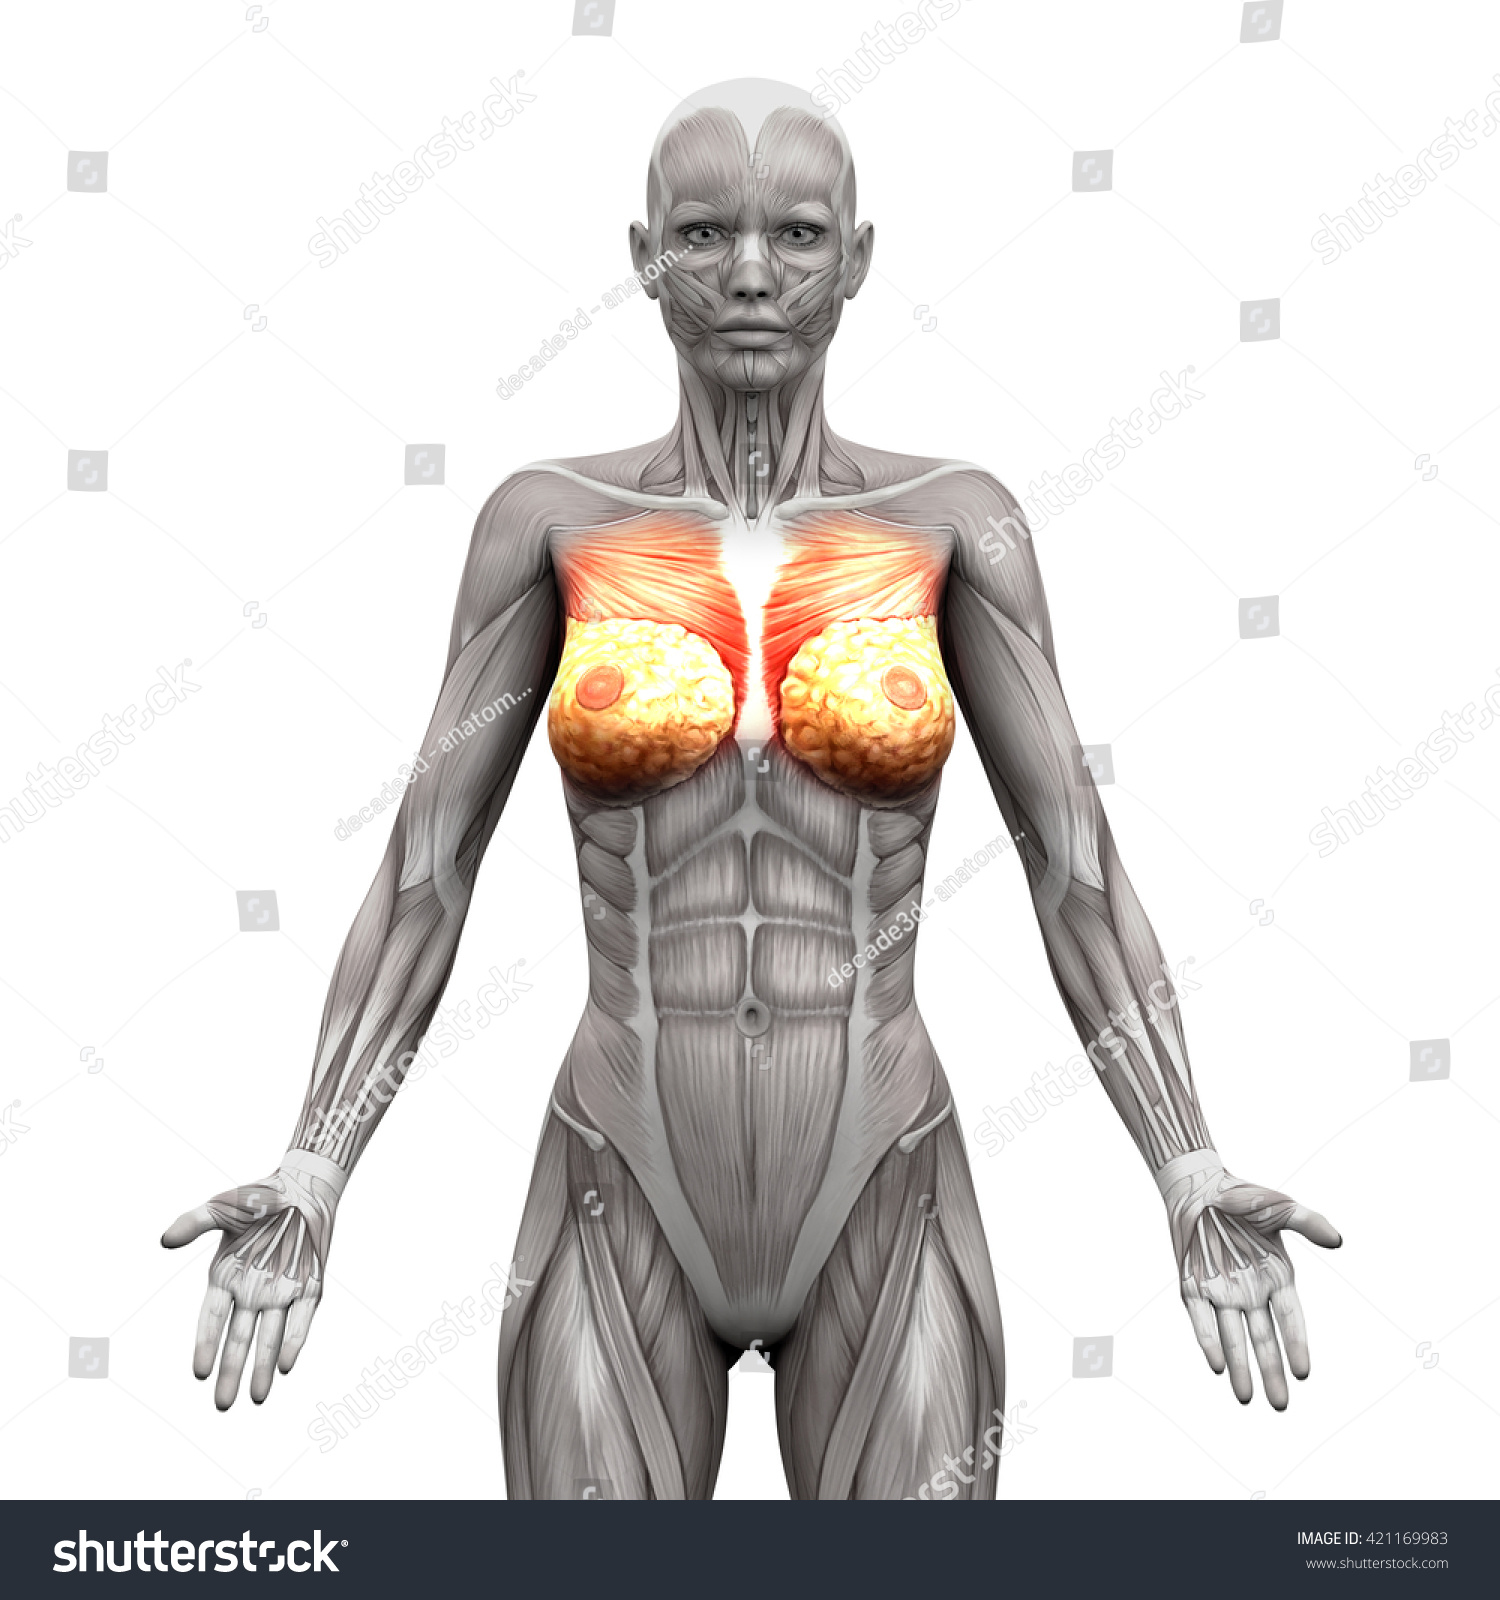 Chest Pectoralis Major Minor Anatomy Muscles Stock Illustration ...